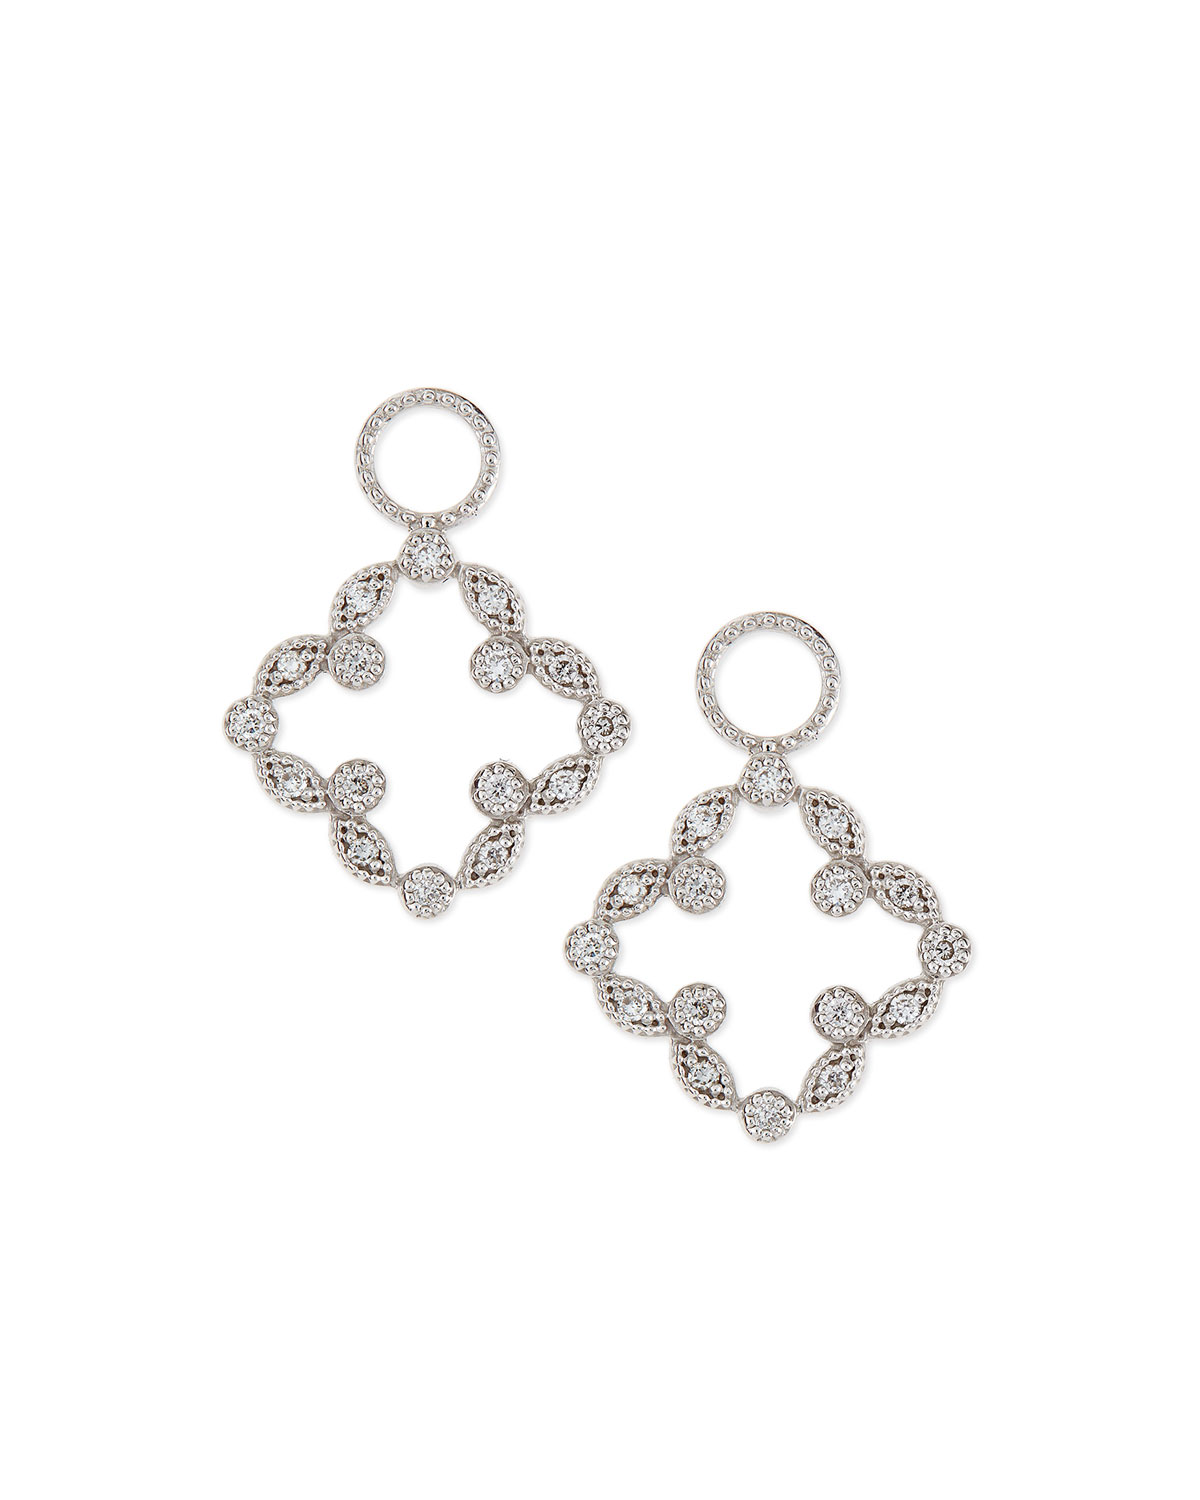 Open Marquise Pave Diamond Clover Earring Charms